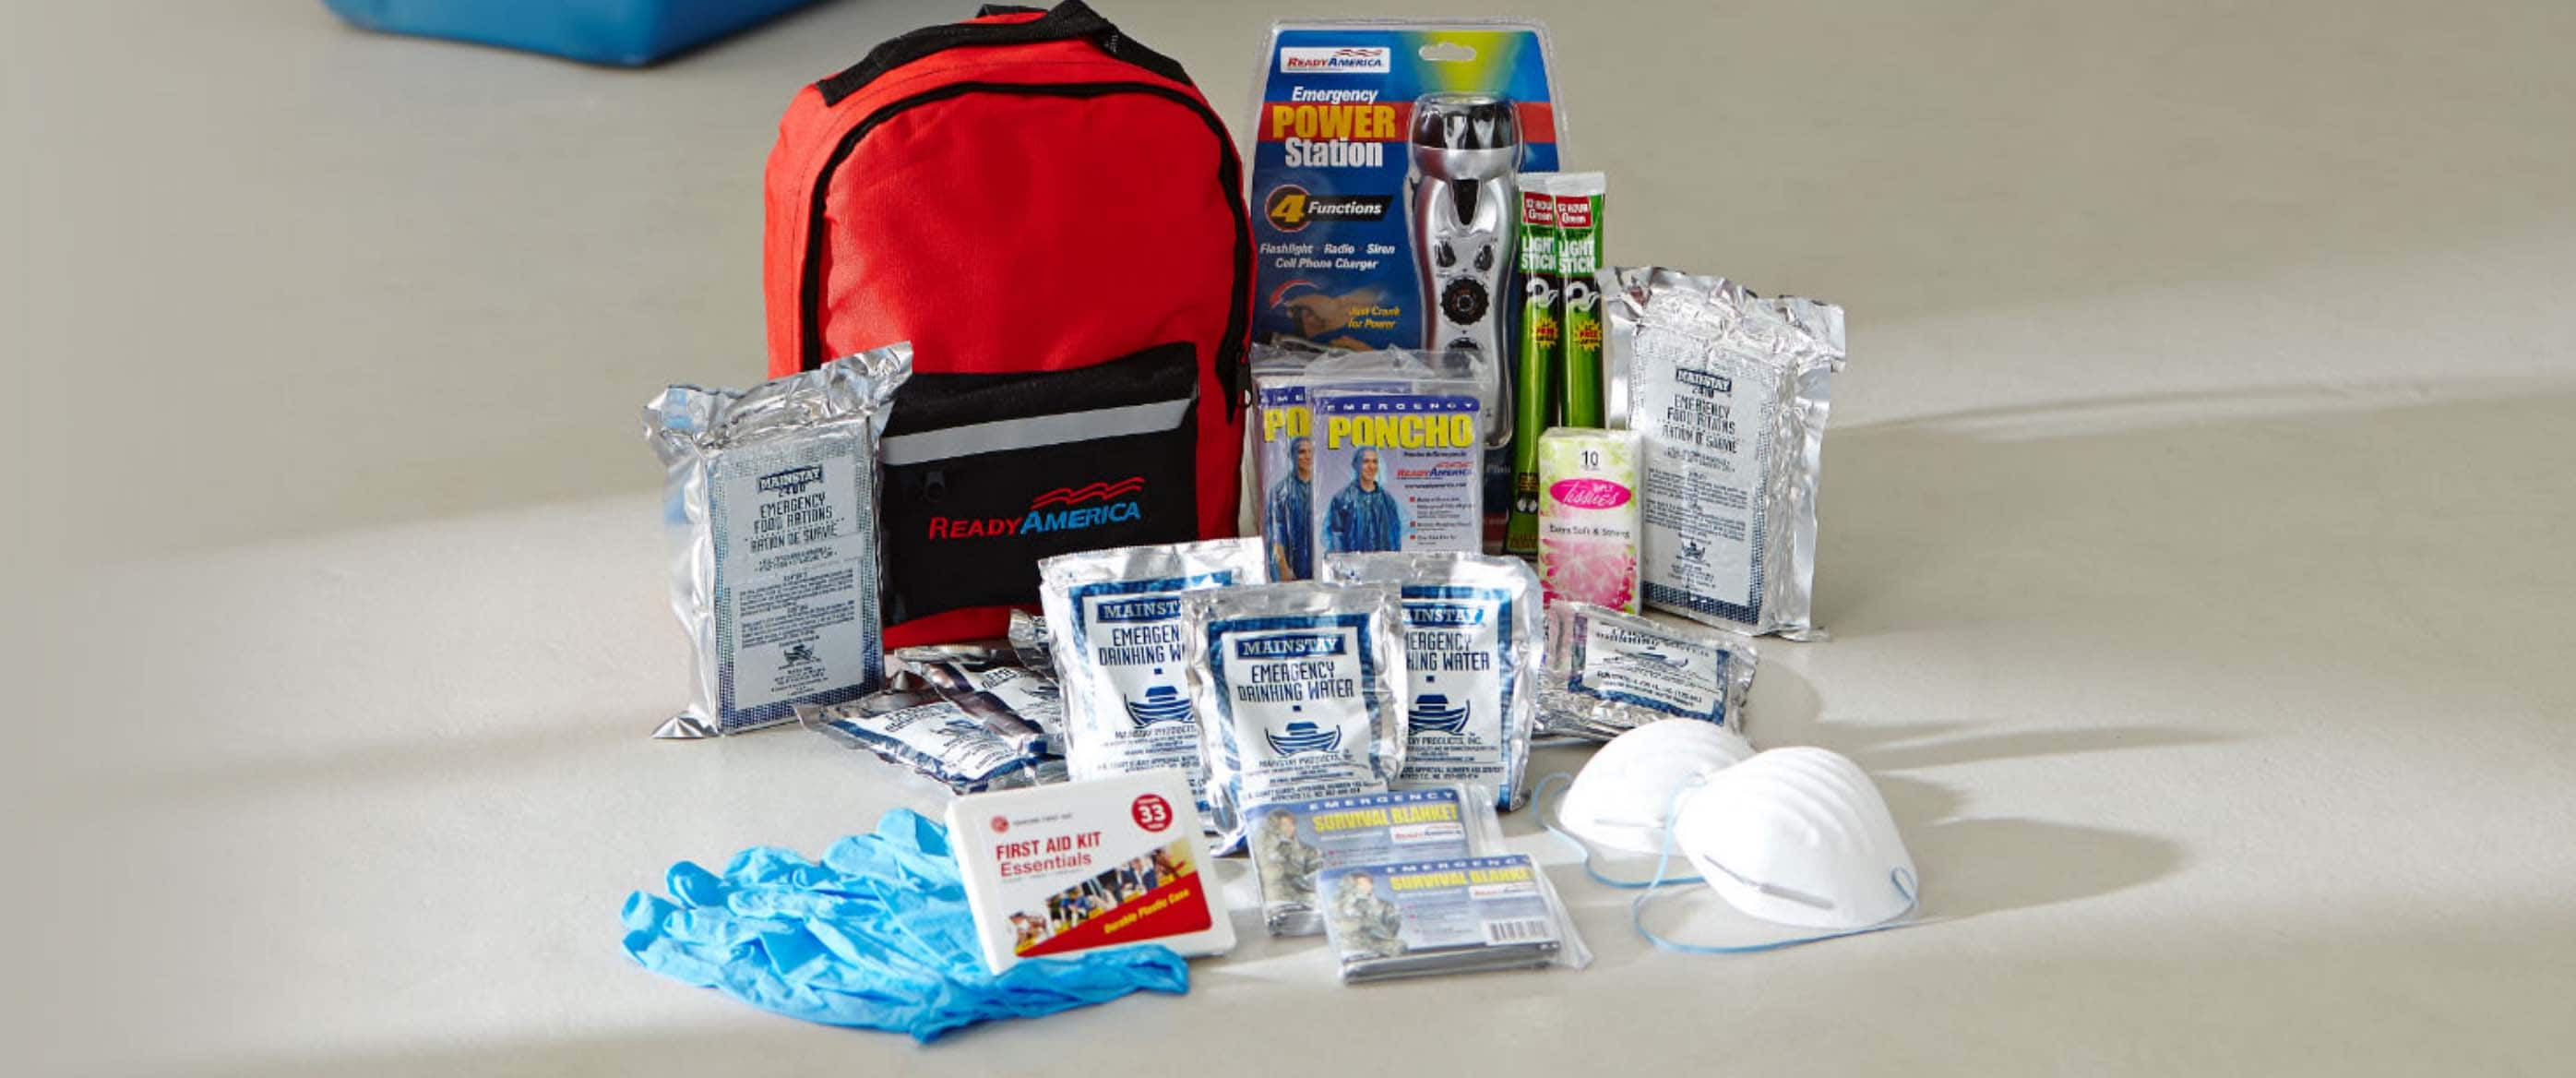 What You Need for a Business First Aid Kit